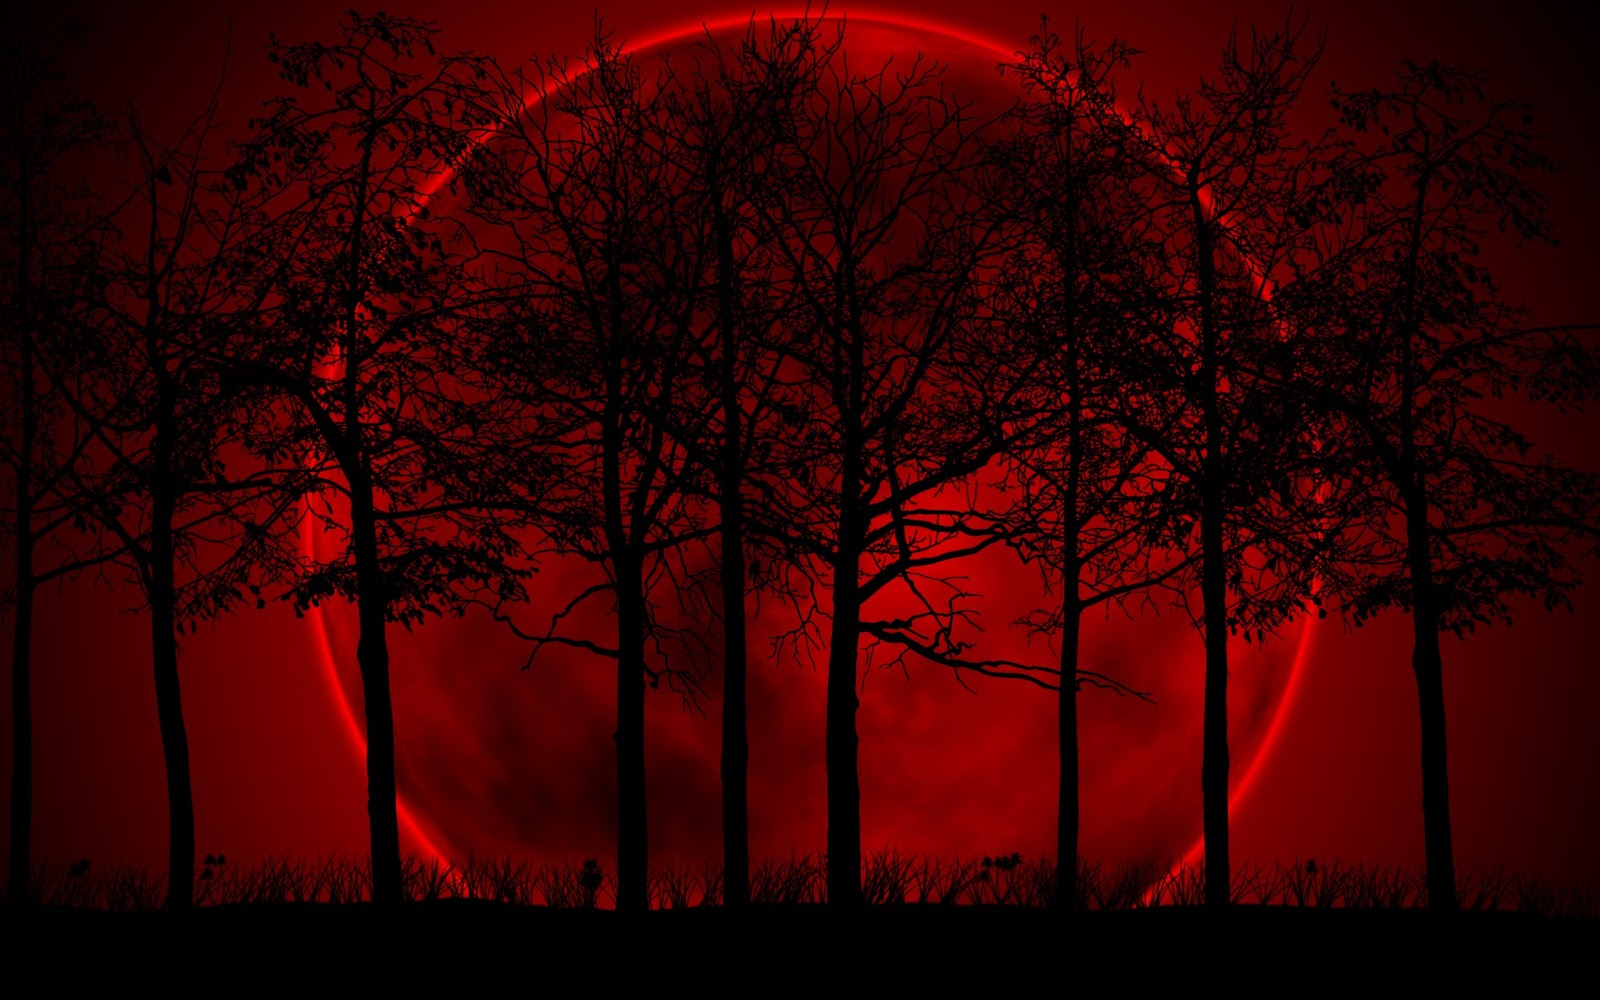 blood red moons - photo #27